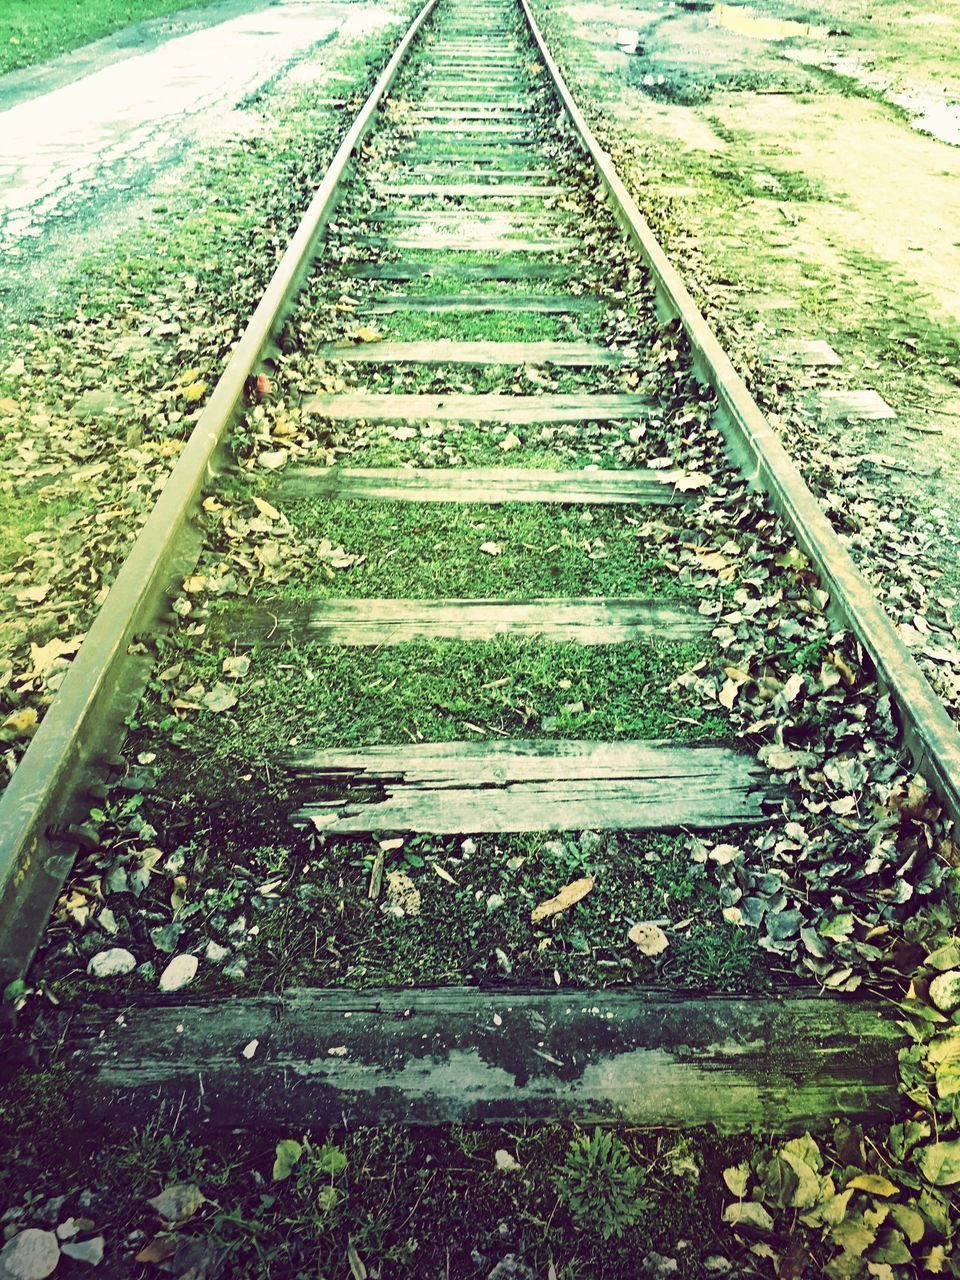 railroad track, rail transportation, day, railroad tie, nature, outdoors, no people, transportation, tranquility, straight, beauty in nature, grass